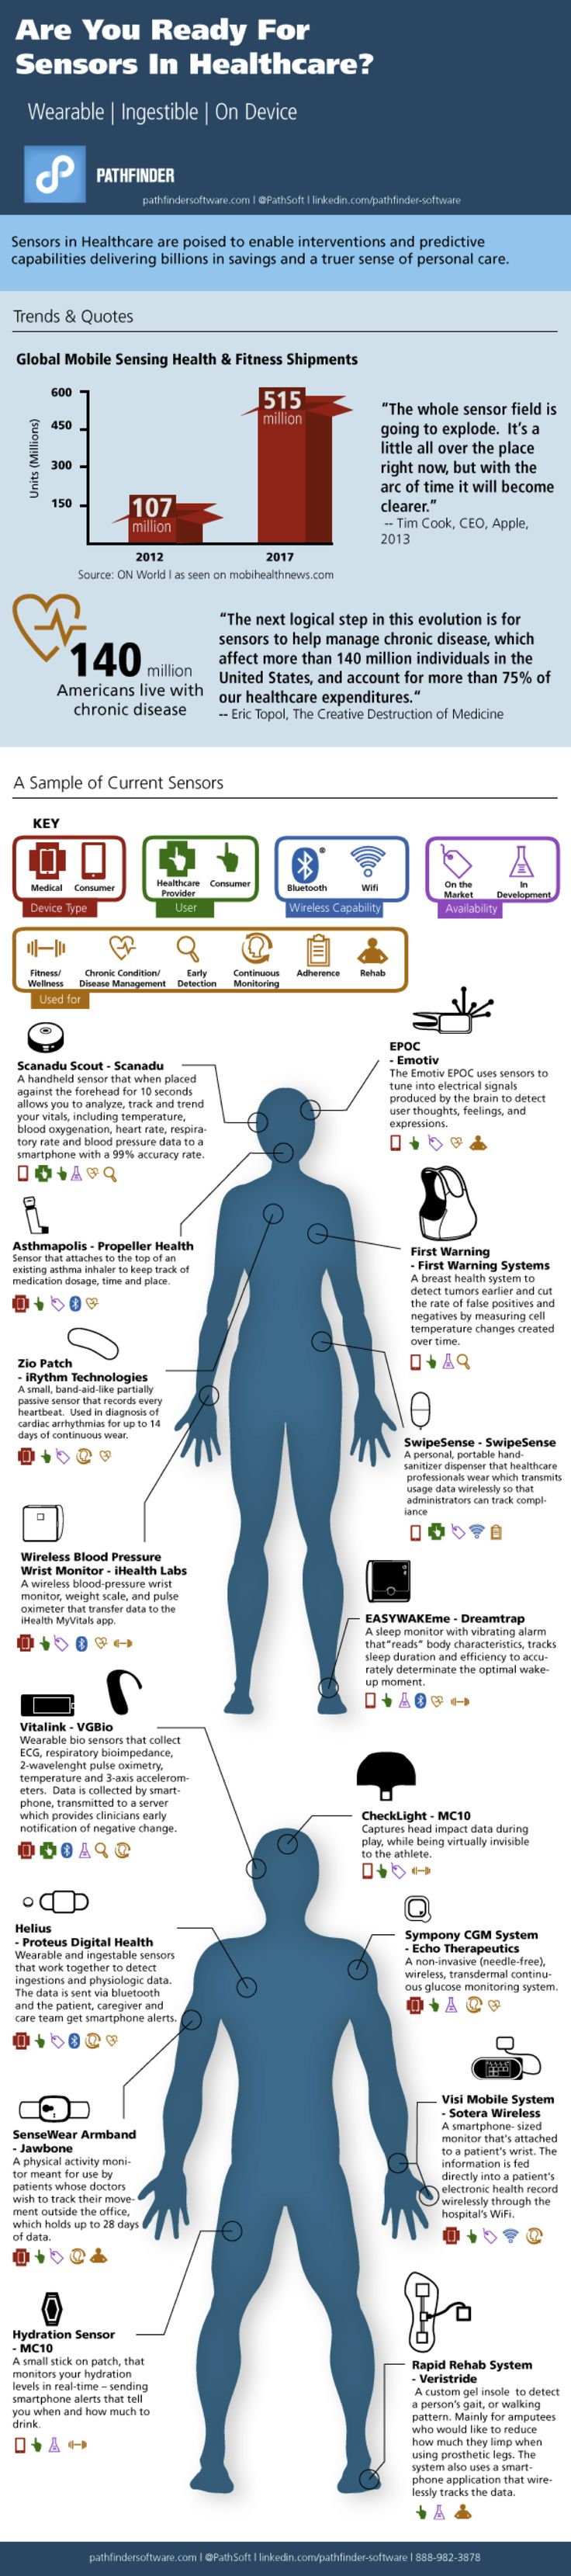 Are You Ready for Some Sensors... in Healthcare? #infographic